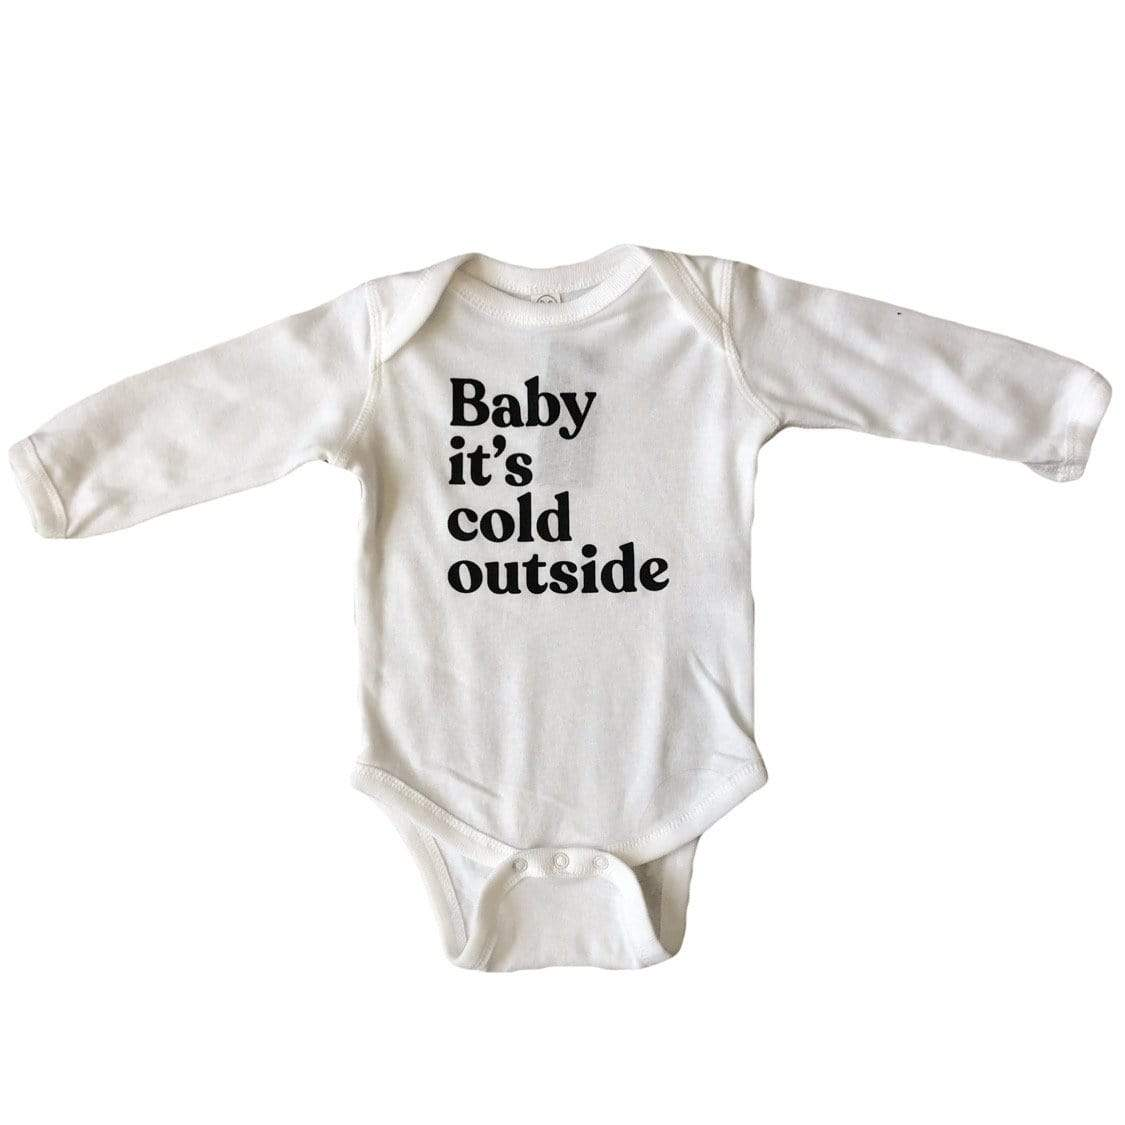 The Oyster's Pearl -Baby it's cold outside long sleeve onesie Onesie The Oyster's Pearl